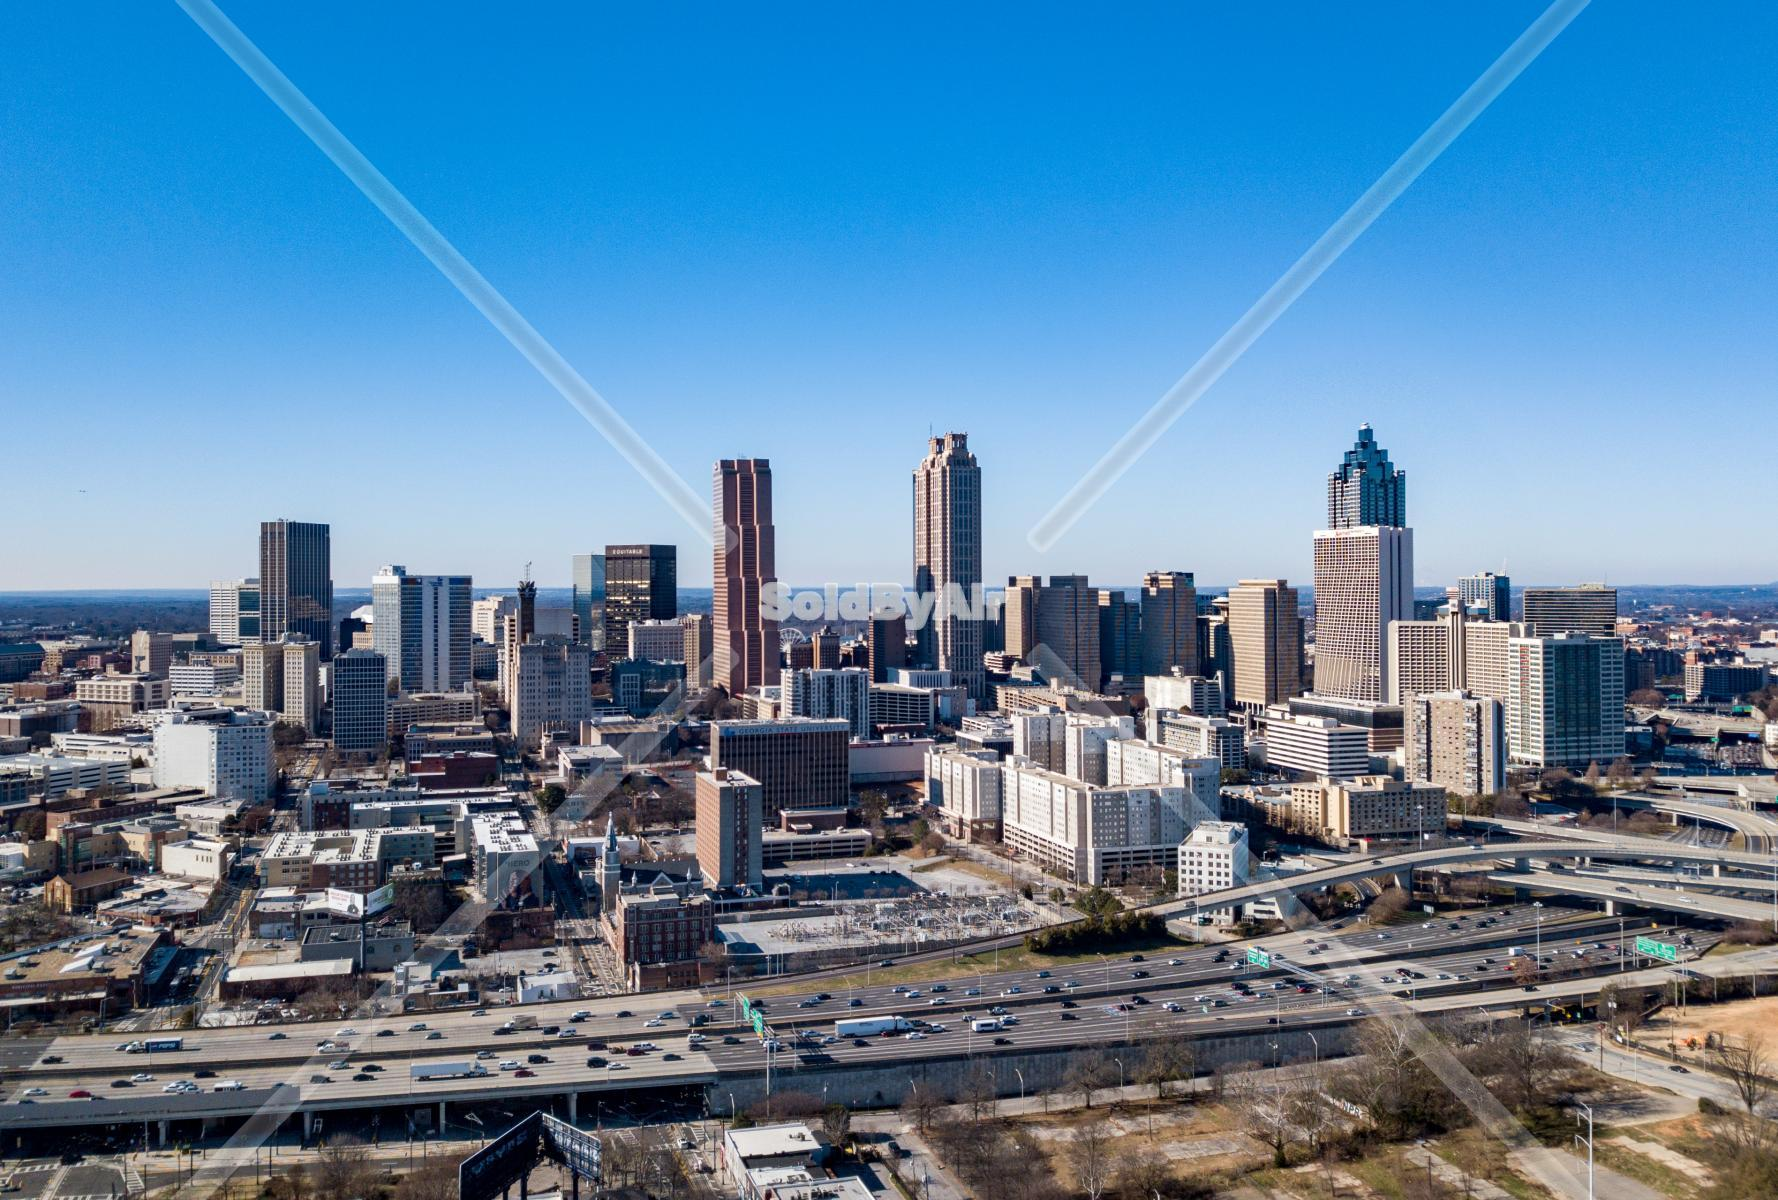 Drone Photo of Atlanta Skyline in Atlanta Georgia